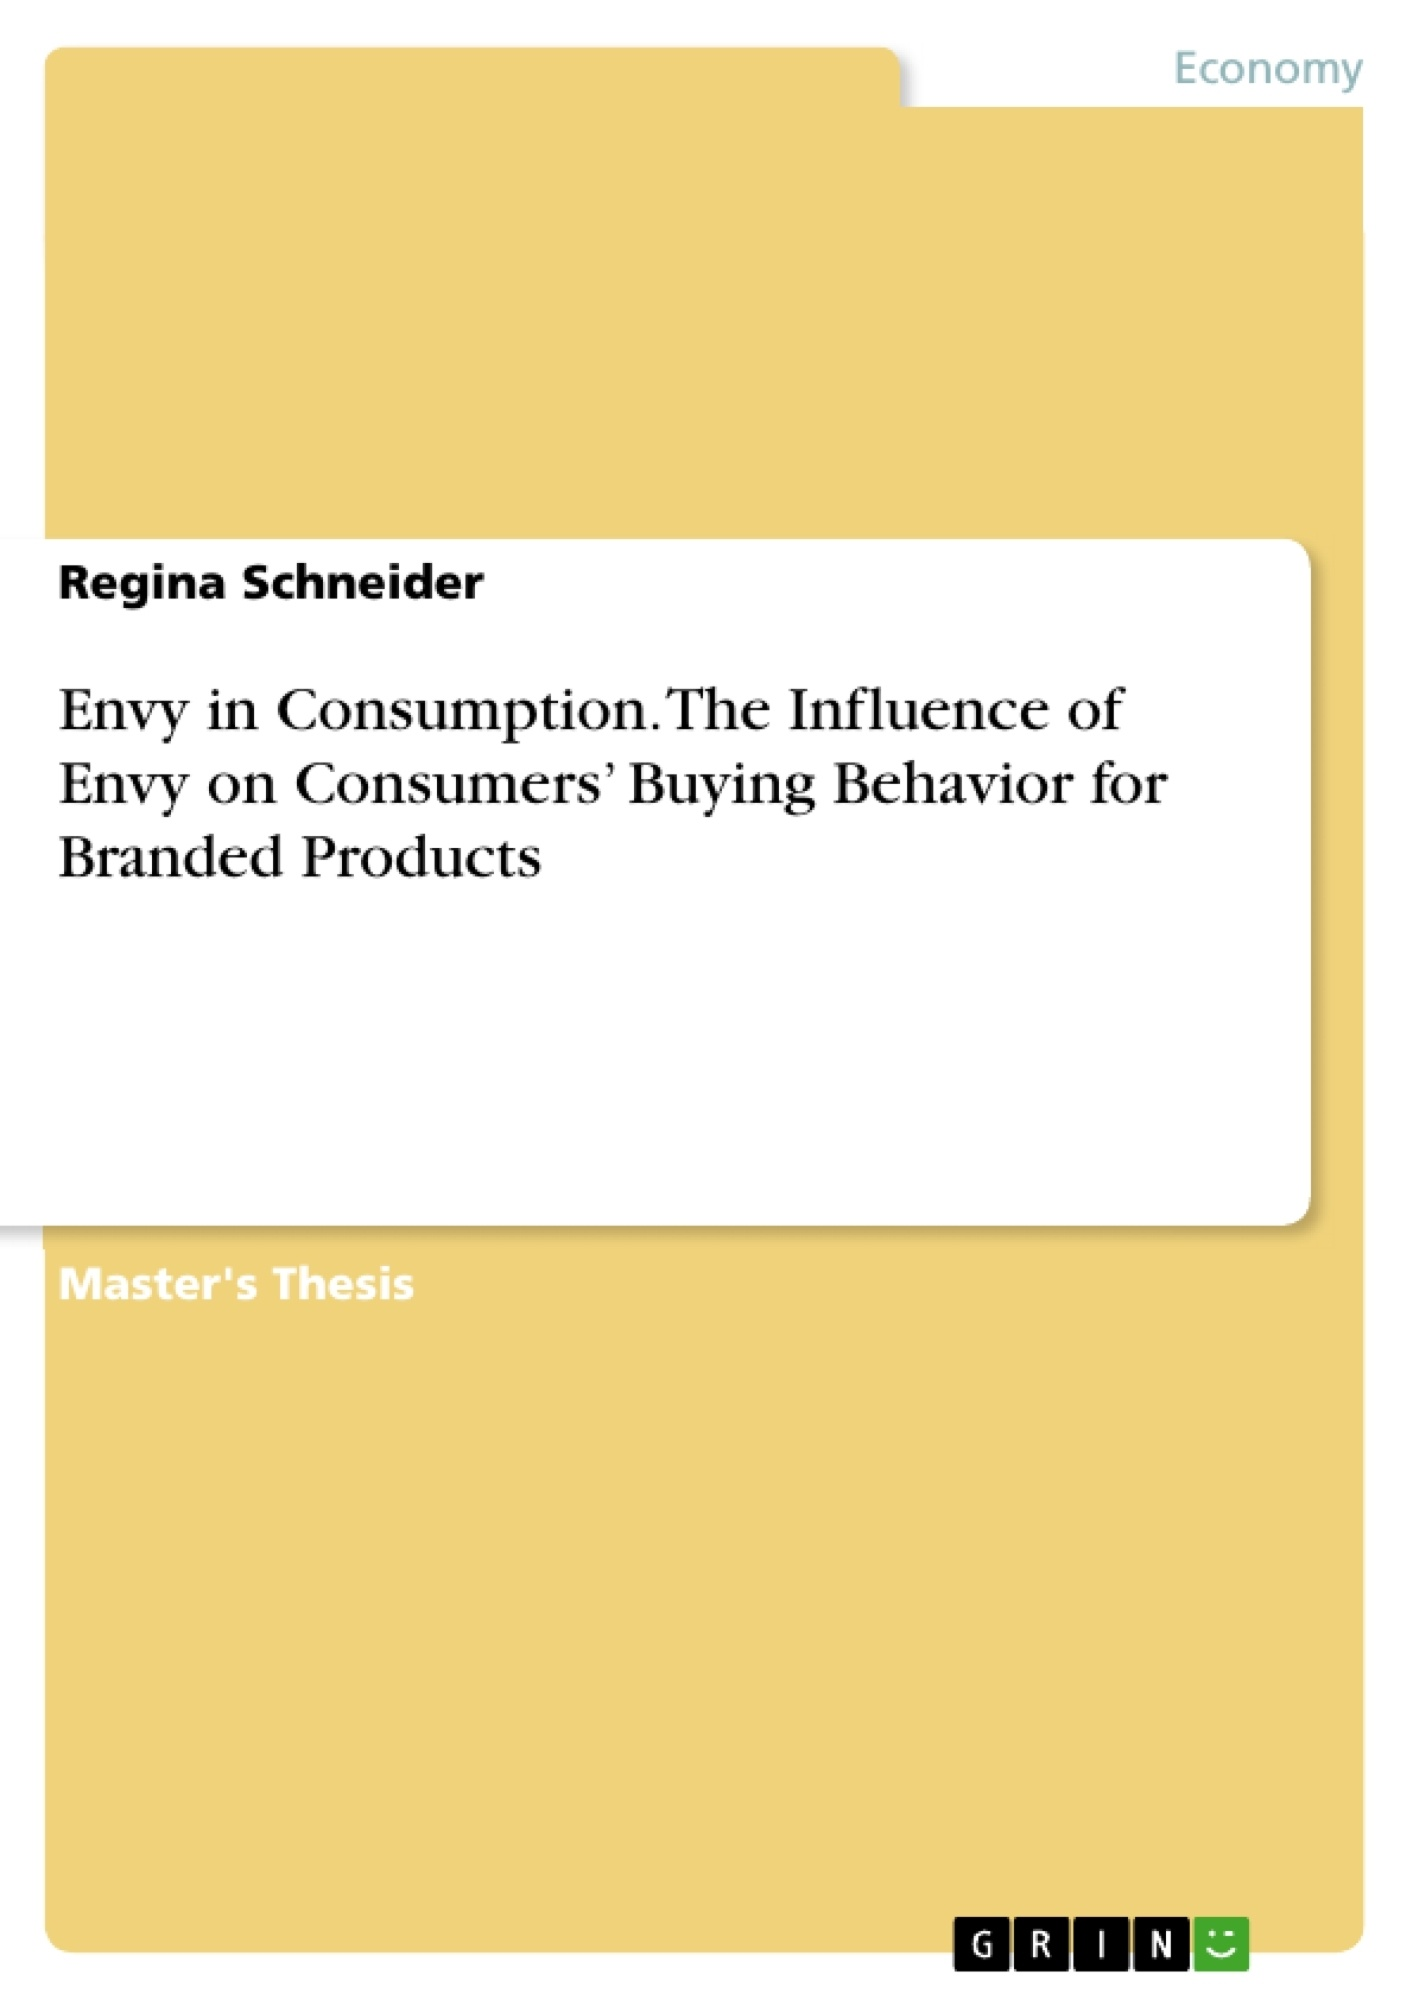 Title: Envy in Consumption. The Influence of Envy on Consumers' Buying Behavior for Branded Products